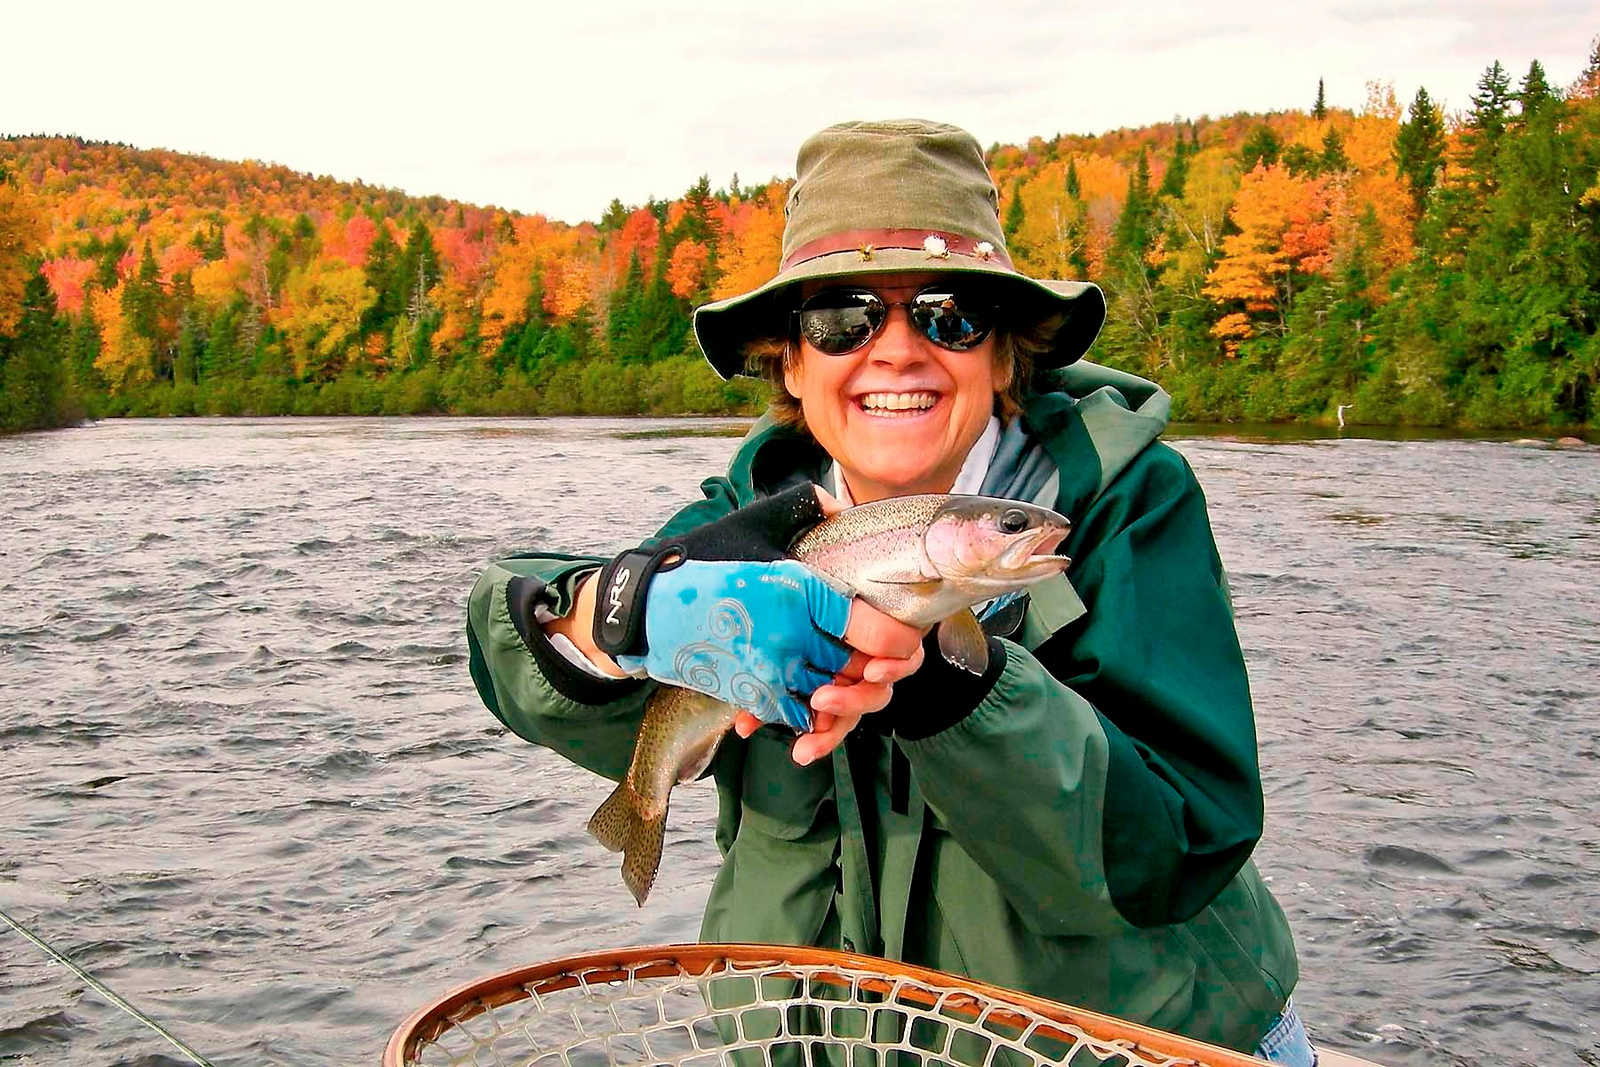 Cathy Trower with a beautiful Andro rainbow. September 29th, 2010